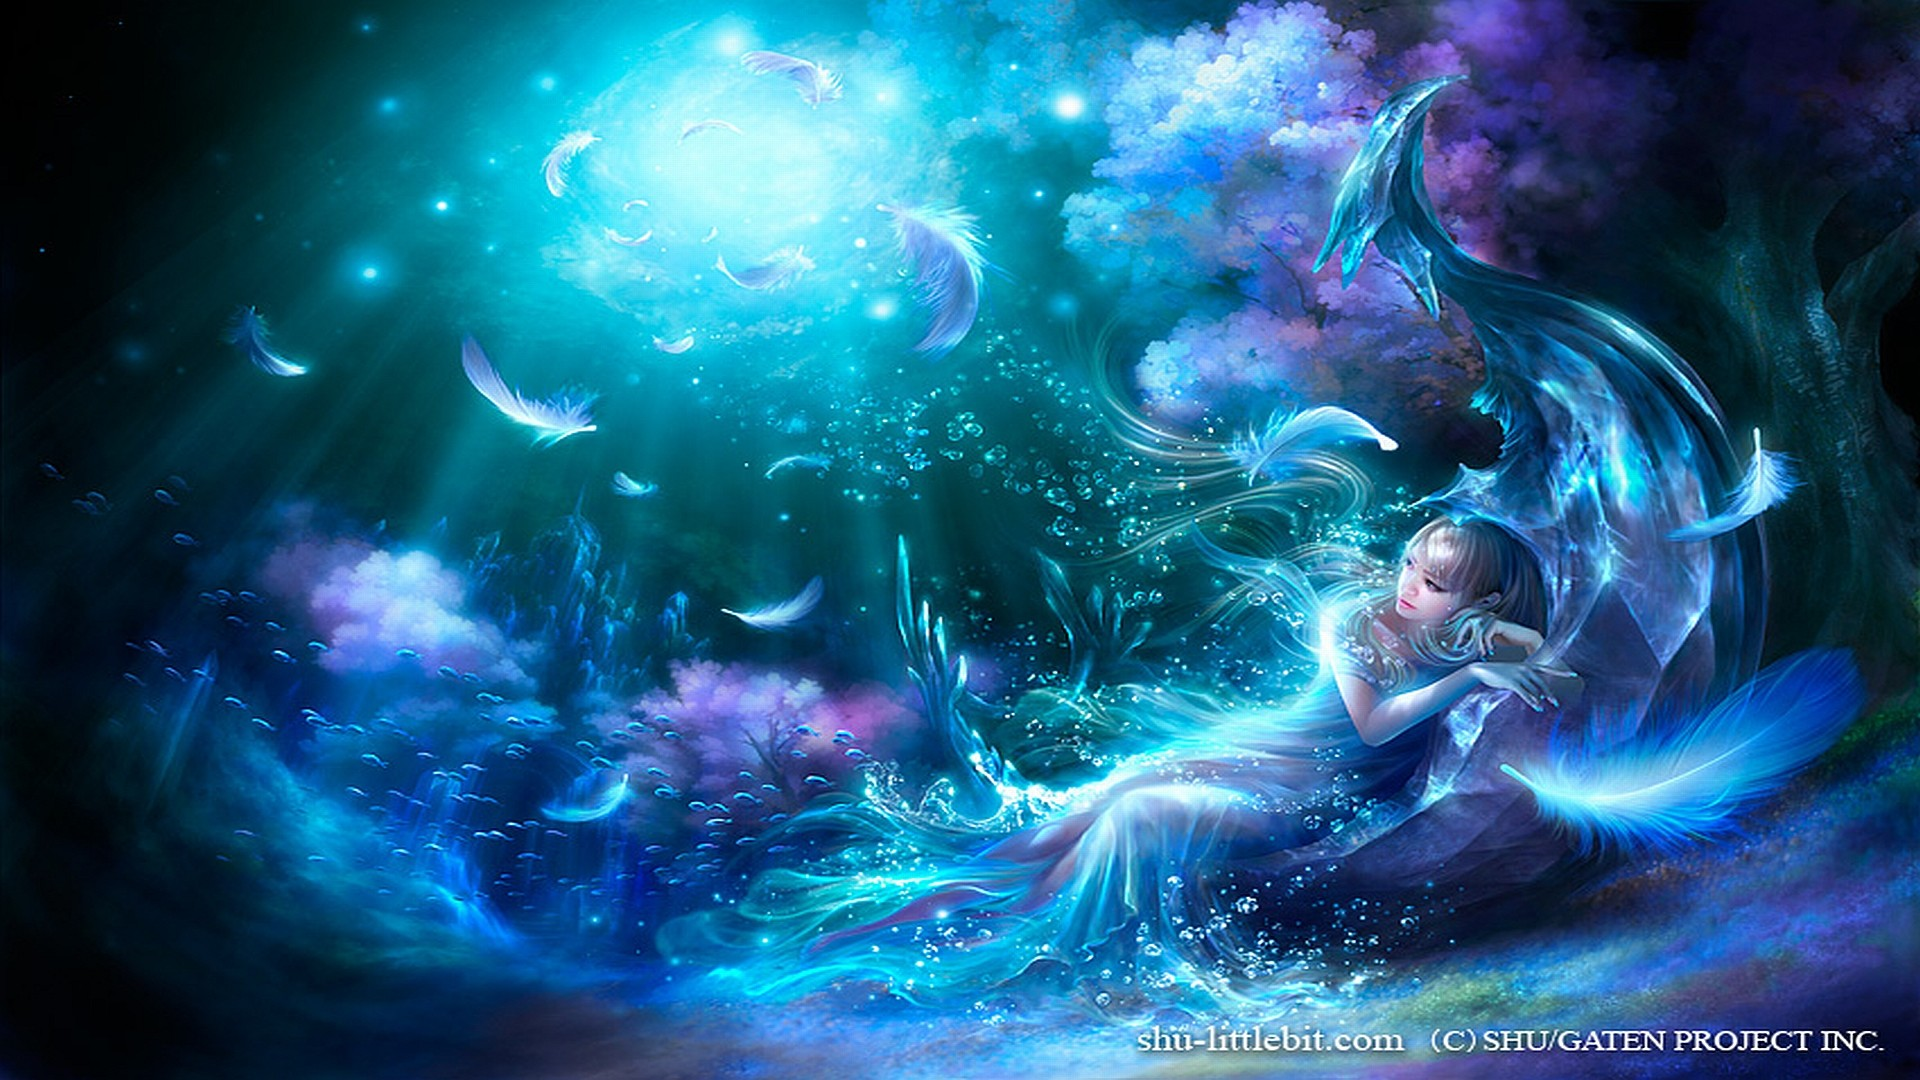 Res: 1920x1080, Larrah111 images my fantasy world HD wallpaper and background photos